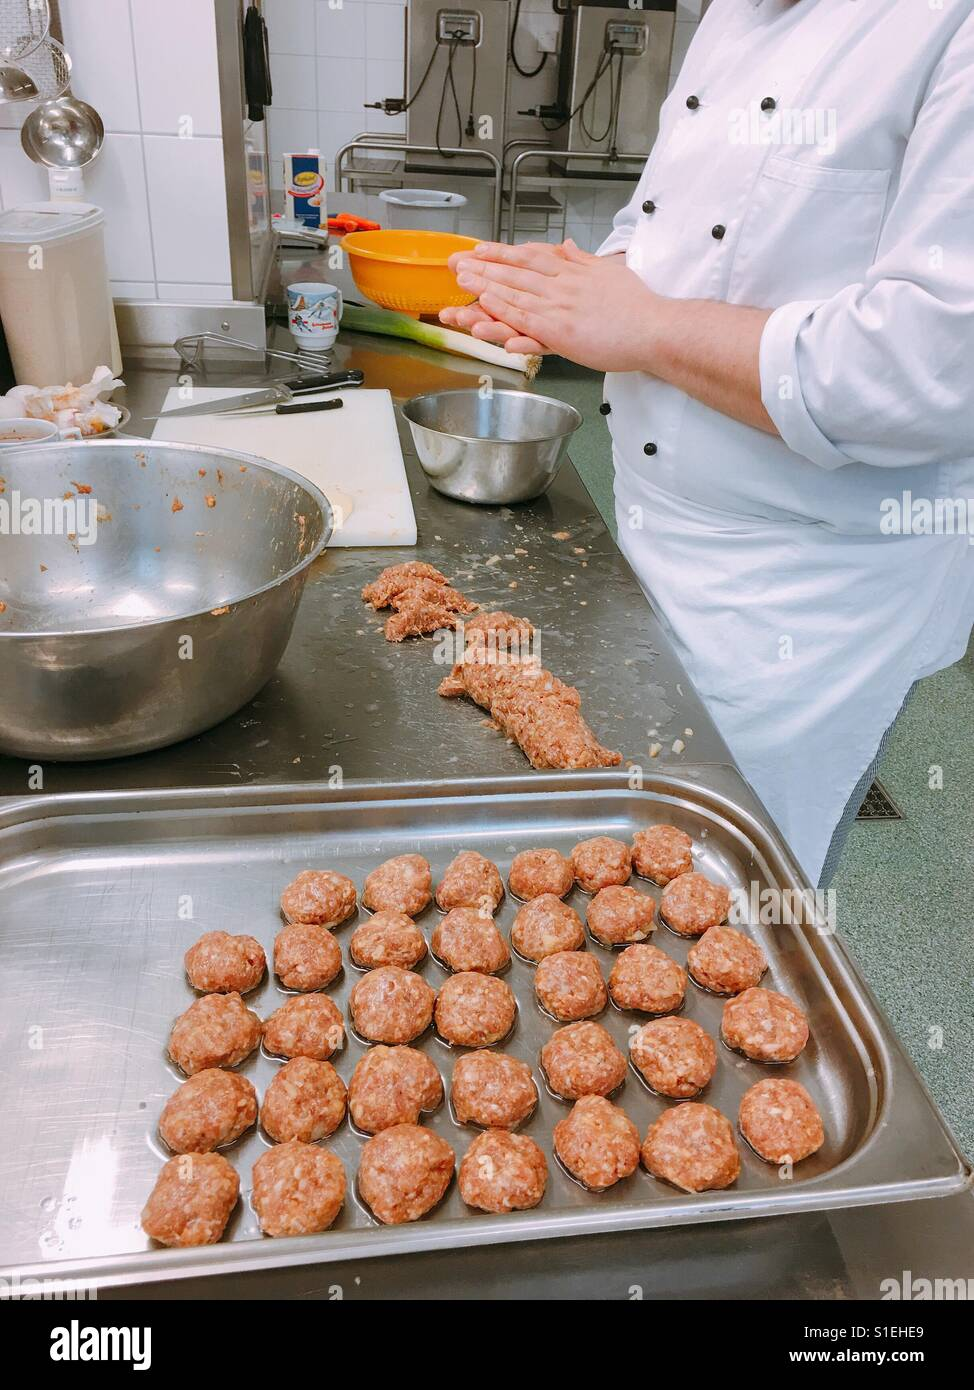 A young trainee cook makes meatballs in the kitchen - Stock Image